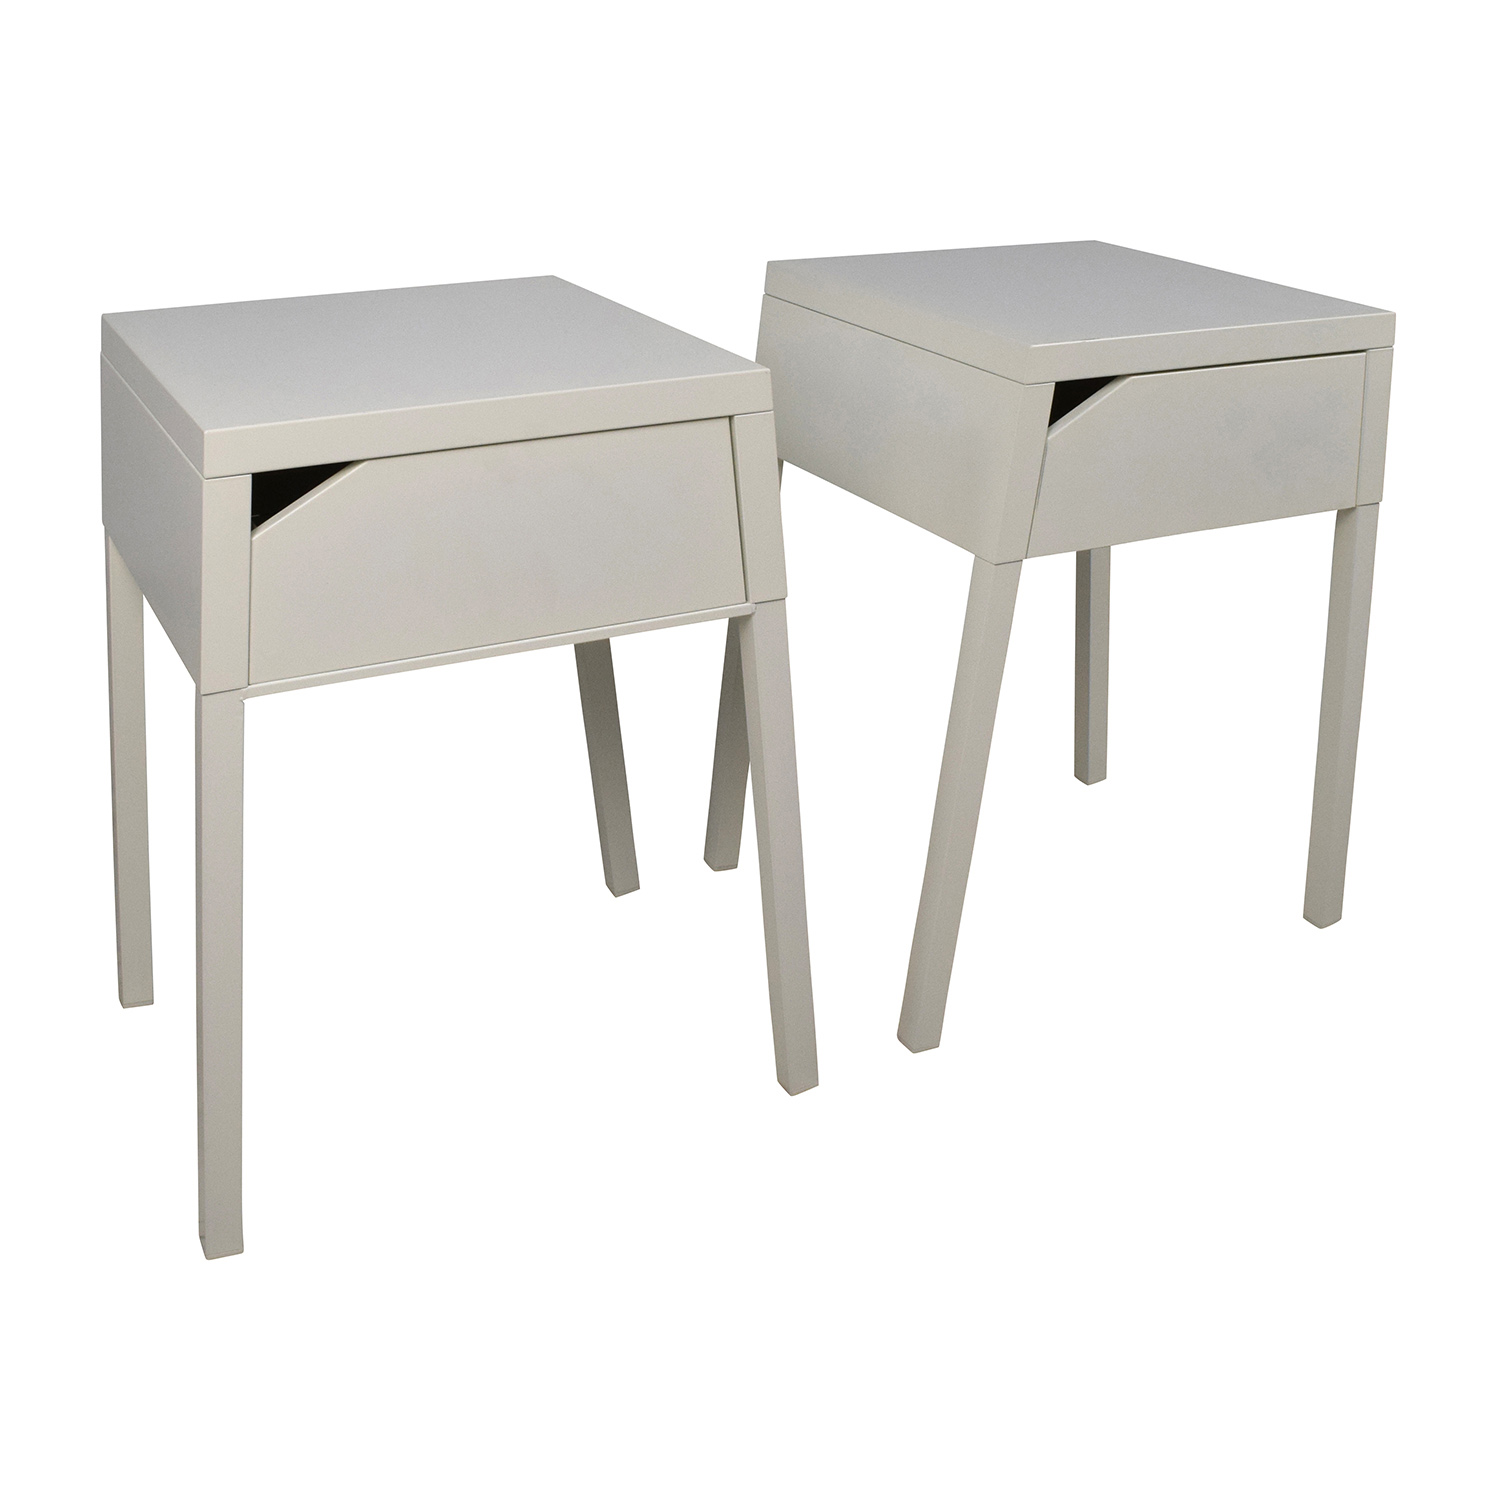 48 off ikea ikea selje white night table set tables